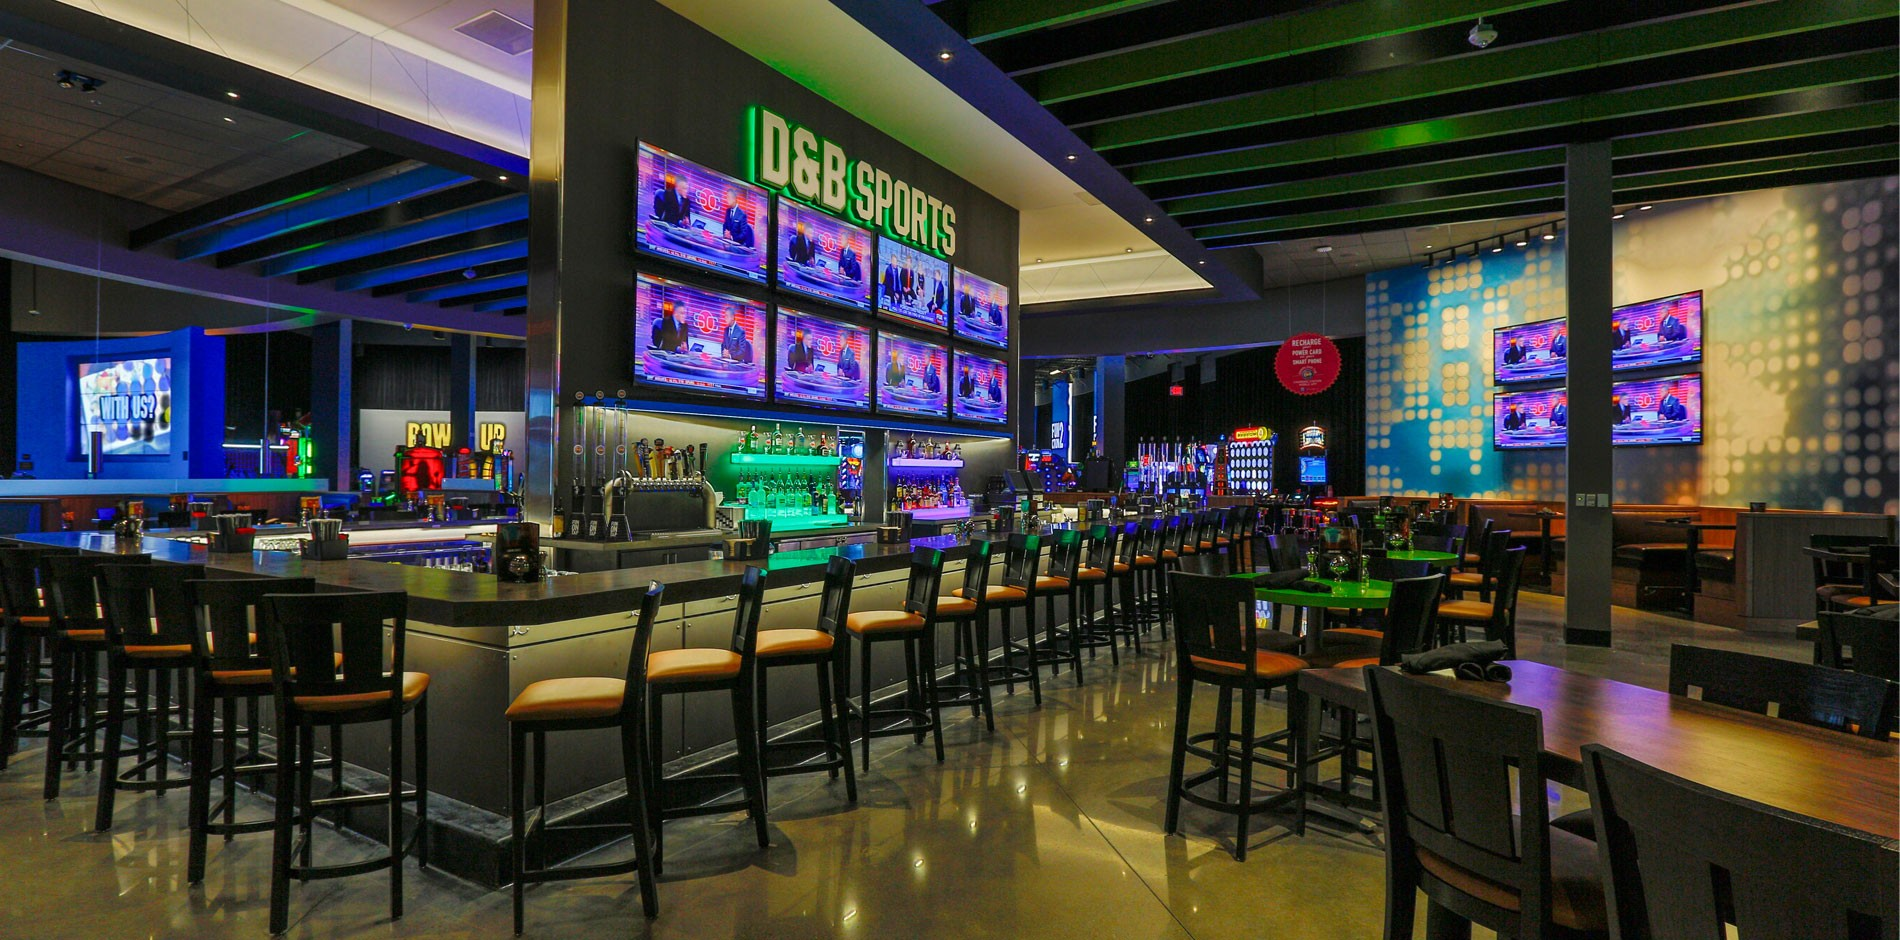 """""""With the success of the Detroit area locations and the growing dining scene in Grand Rapids, it made perfect sense to bring the very best in food, drink, entertainment and sports viewing to West Michigan,"""" said Randy Kerney, General Manager of the new Dave & Buster's location."""